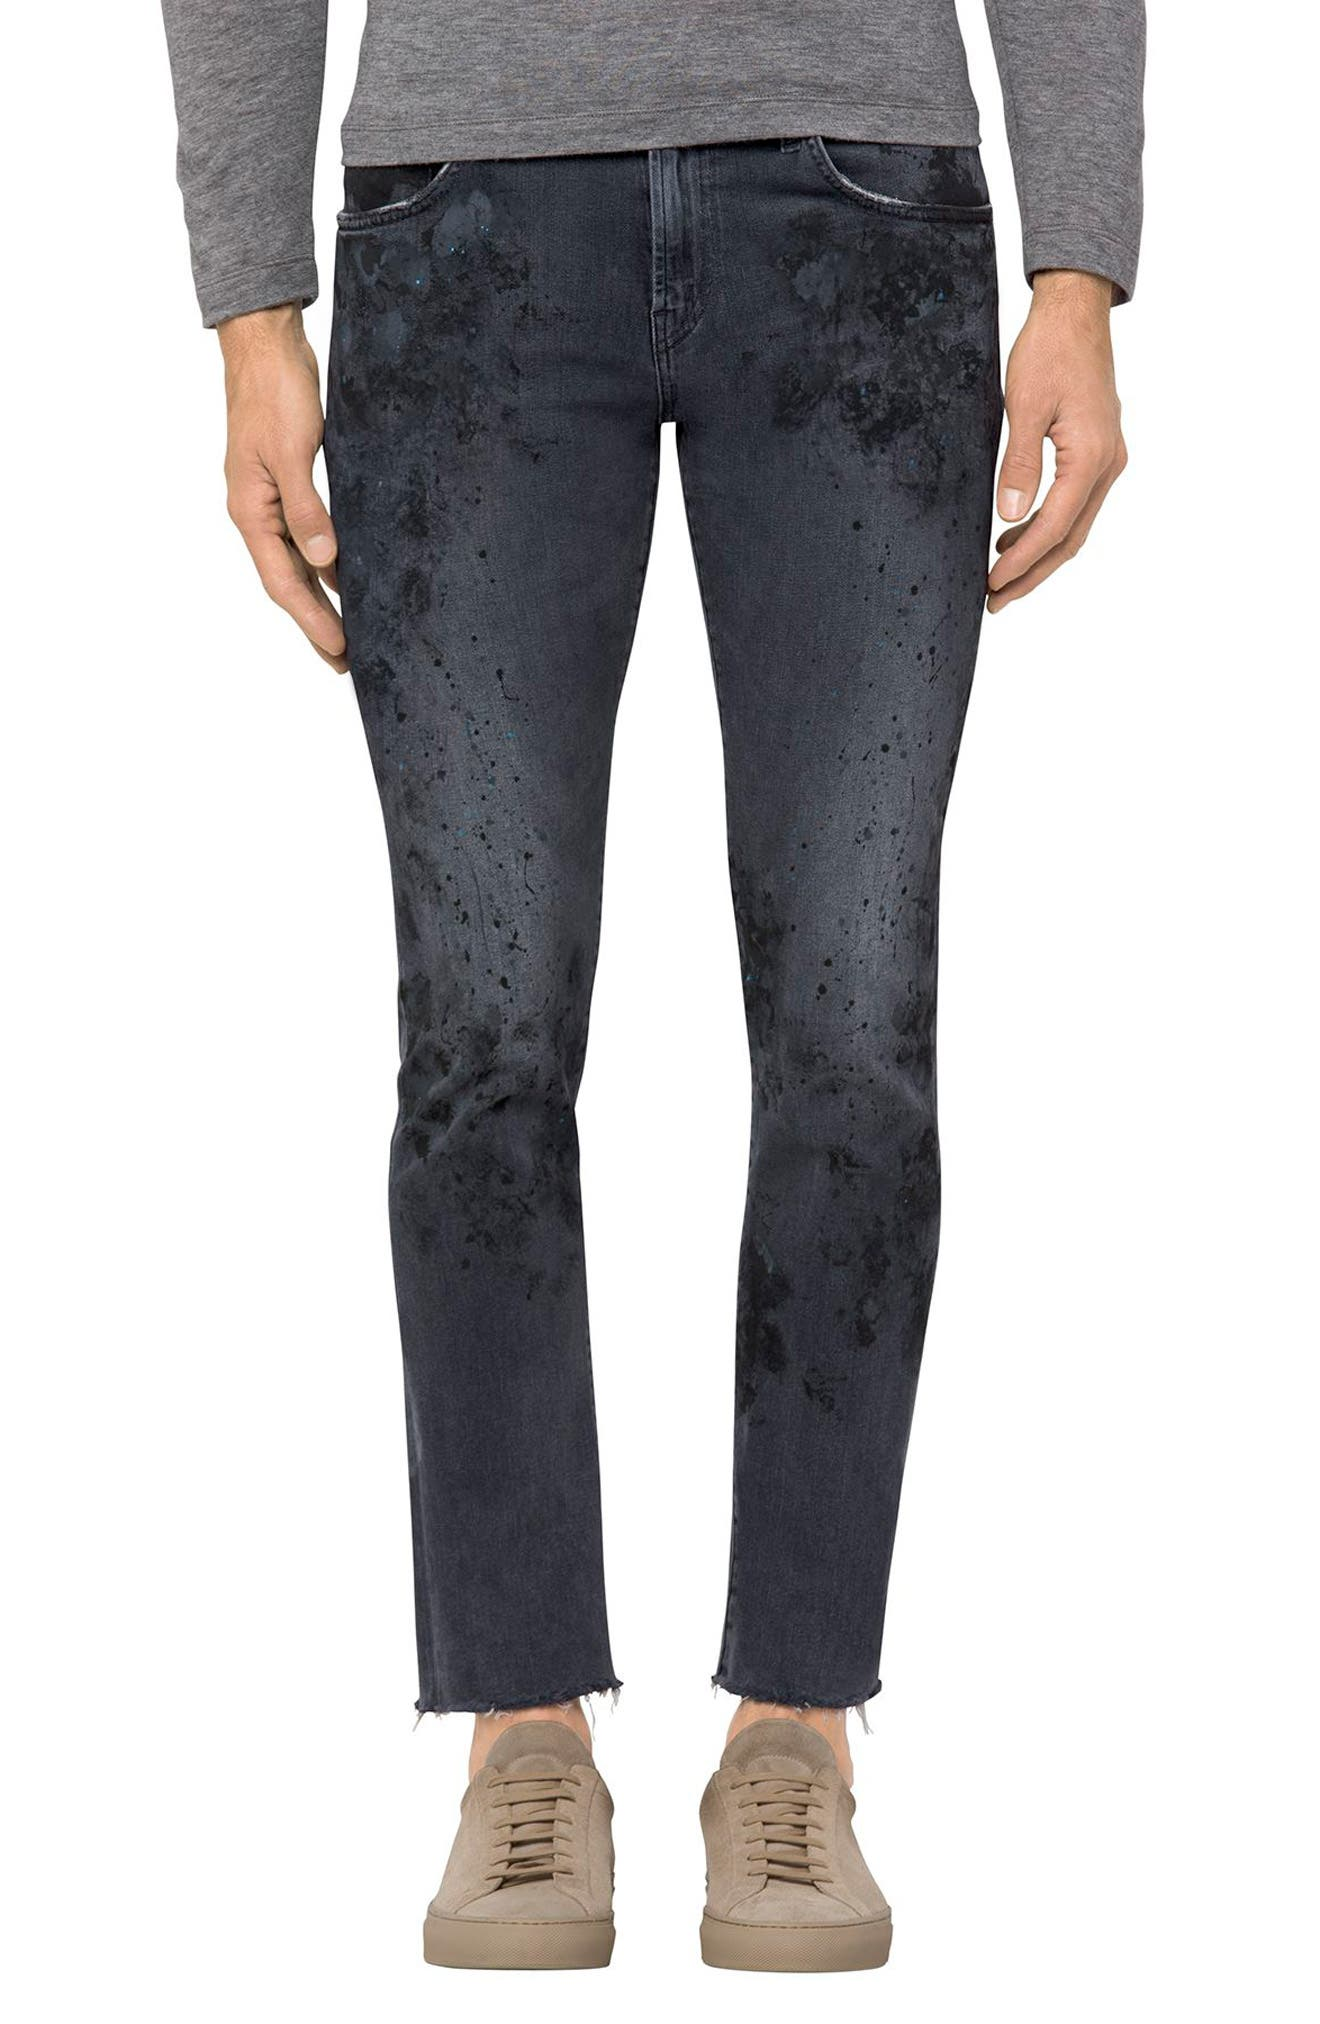 Mick Skinny Fit Jeans,                         Main,                         color,